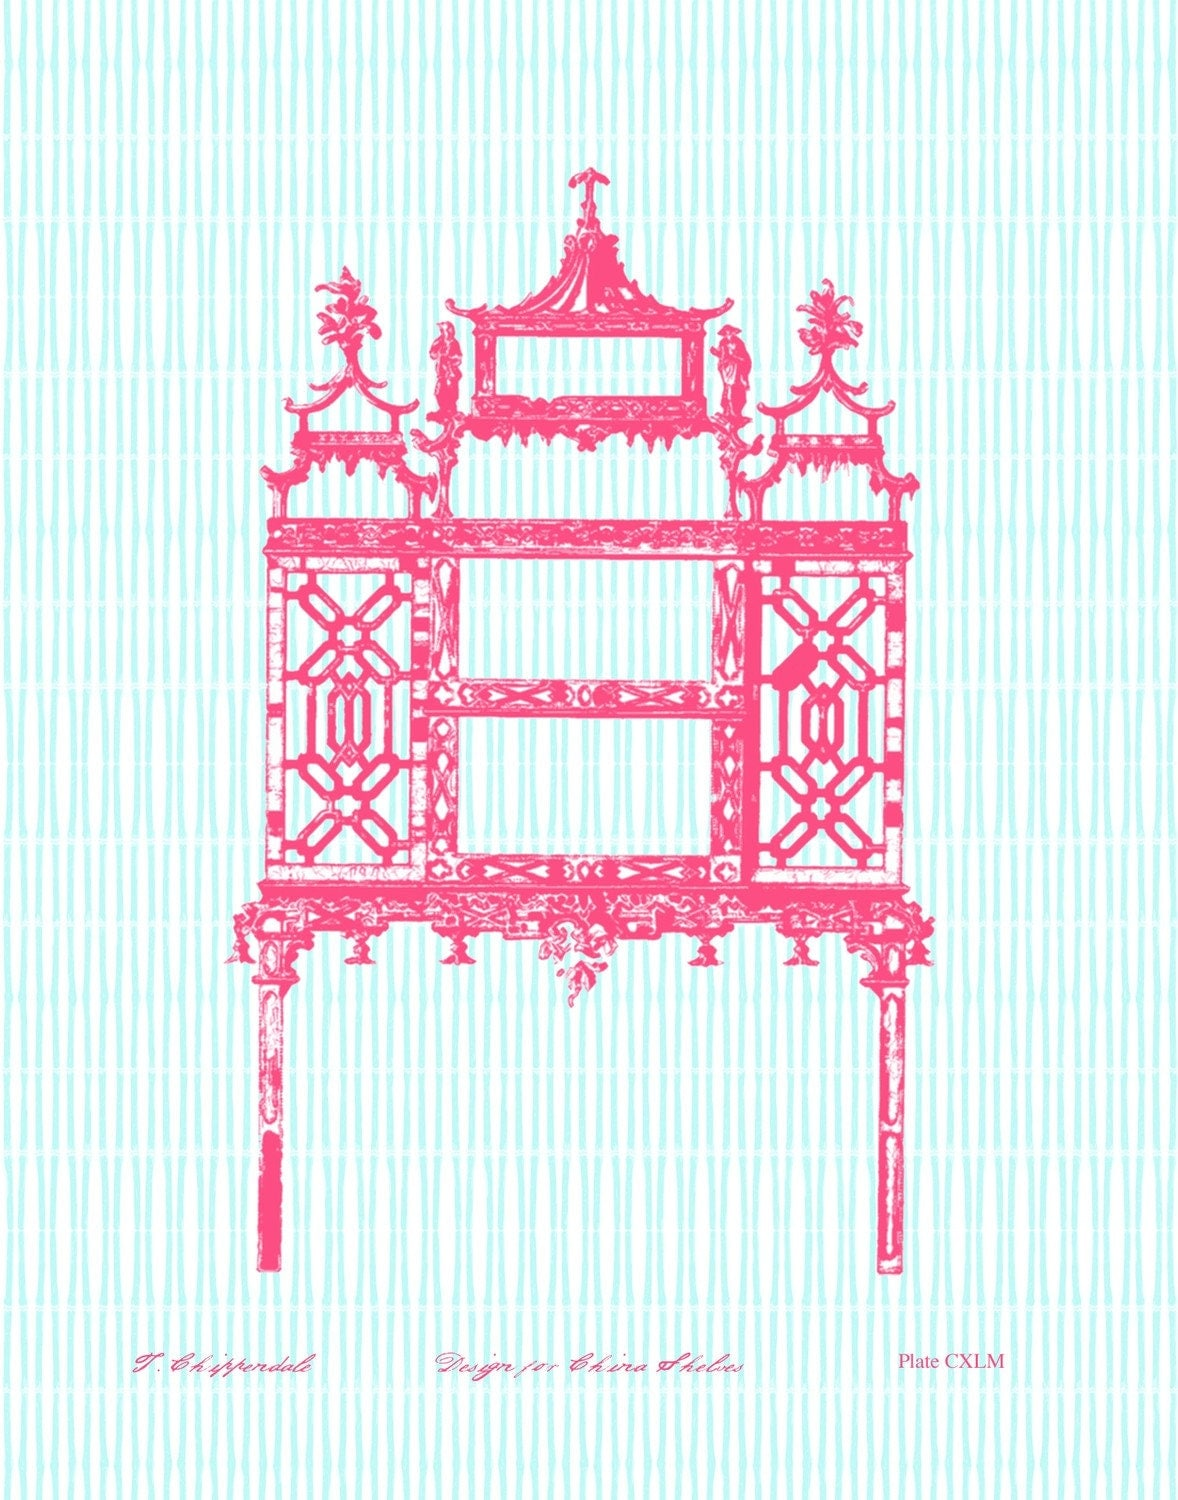 Coral Chinese Chippendale Porcelain Display on Turquoise 11x14 Giclee